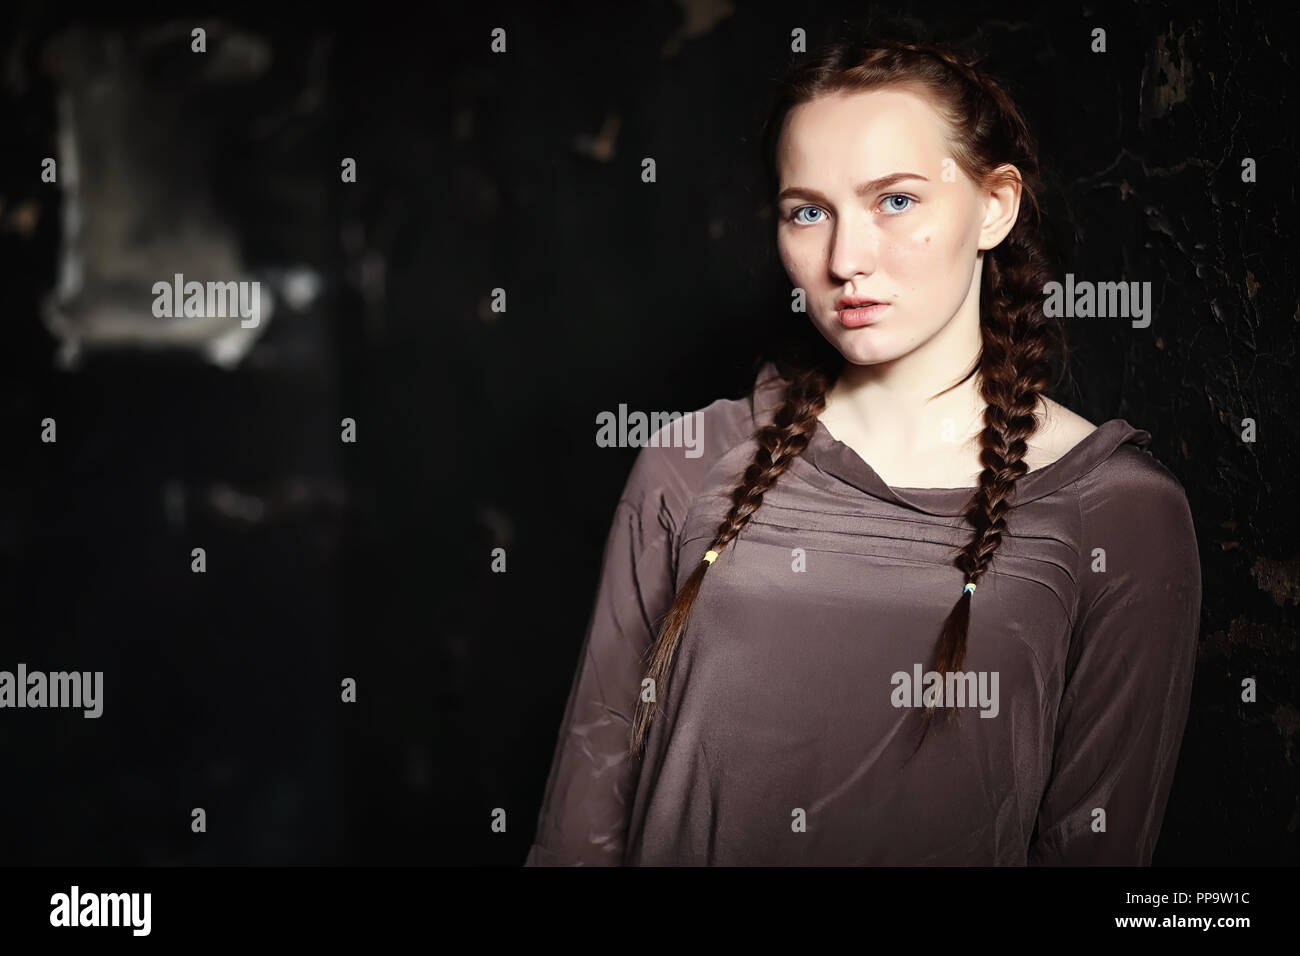 portrait of a frightened young pretty girl  - Stock Image